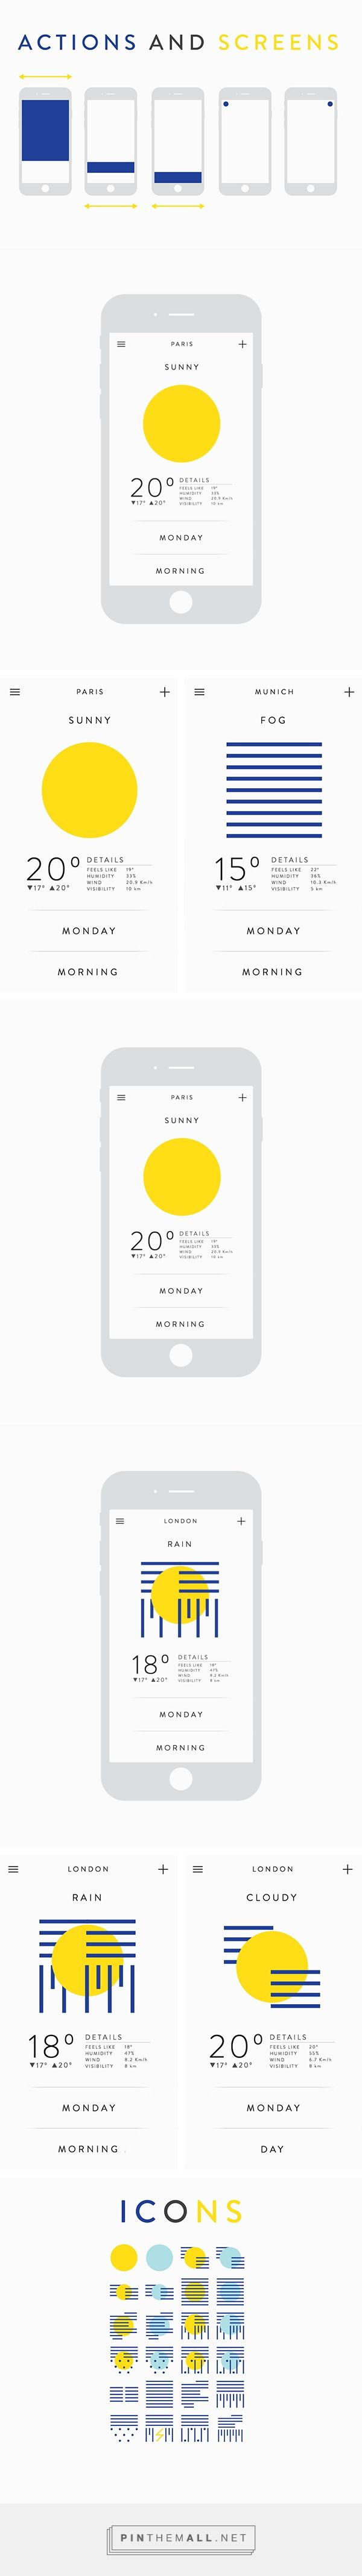 Weather app on Behance https://www.behance.net/gallery/22645245/Weather-app